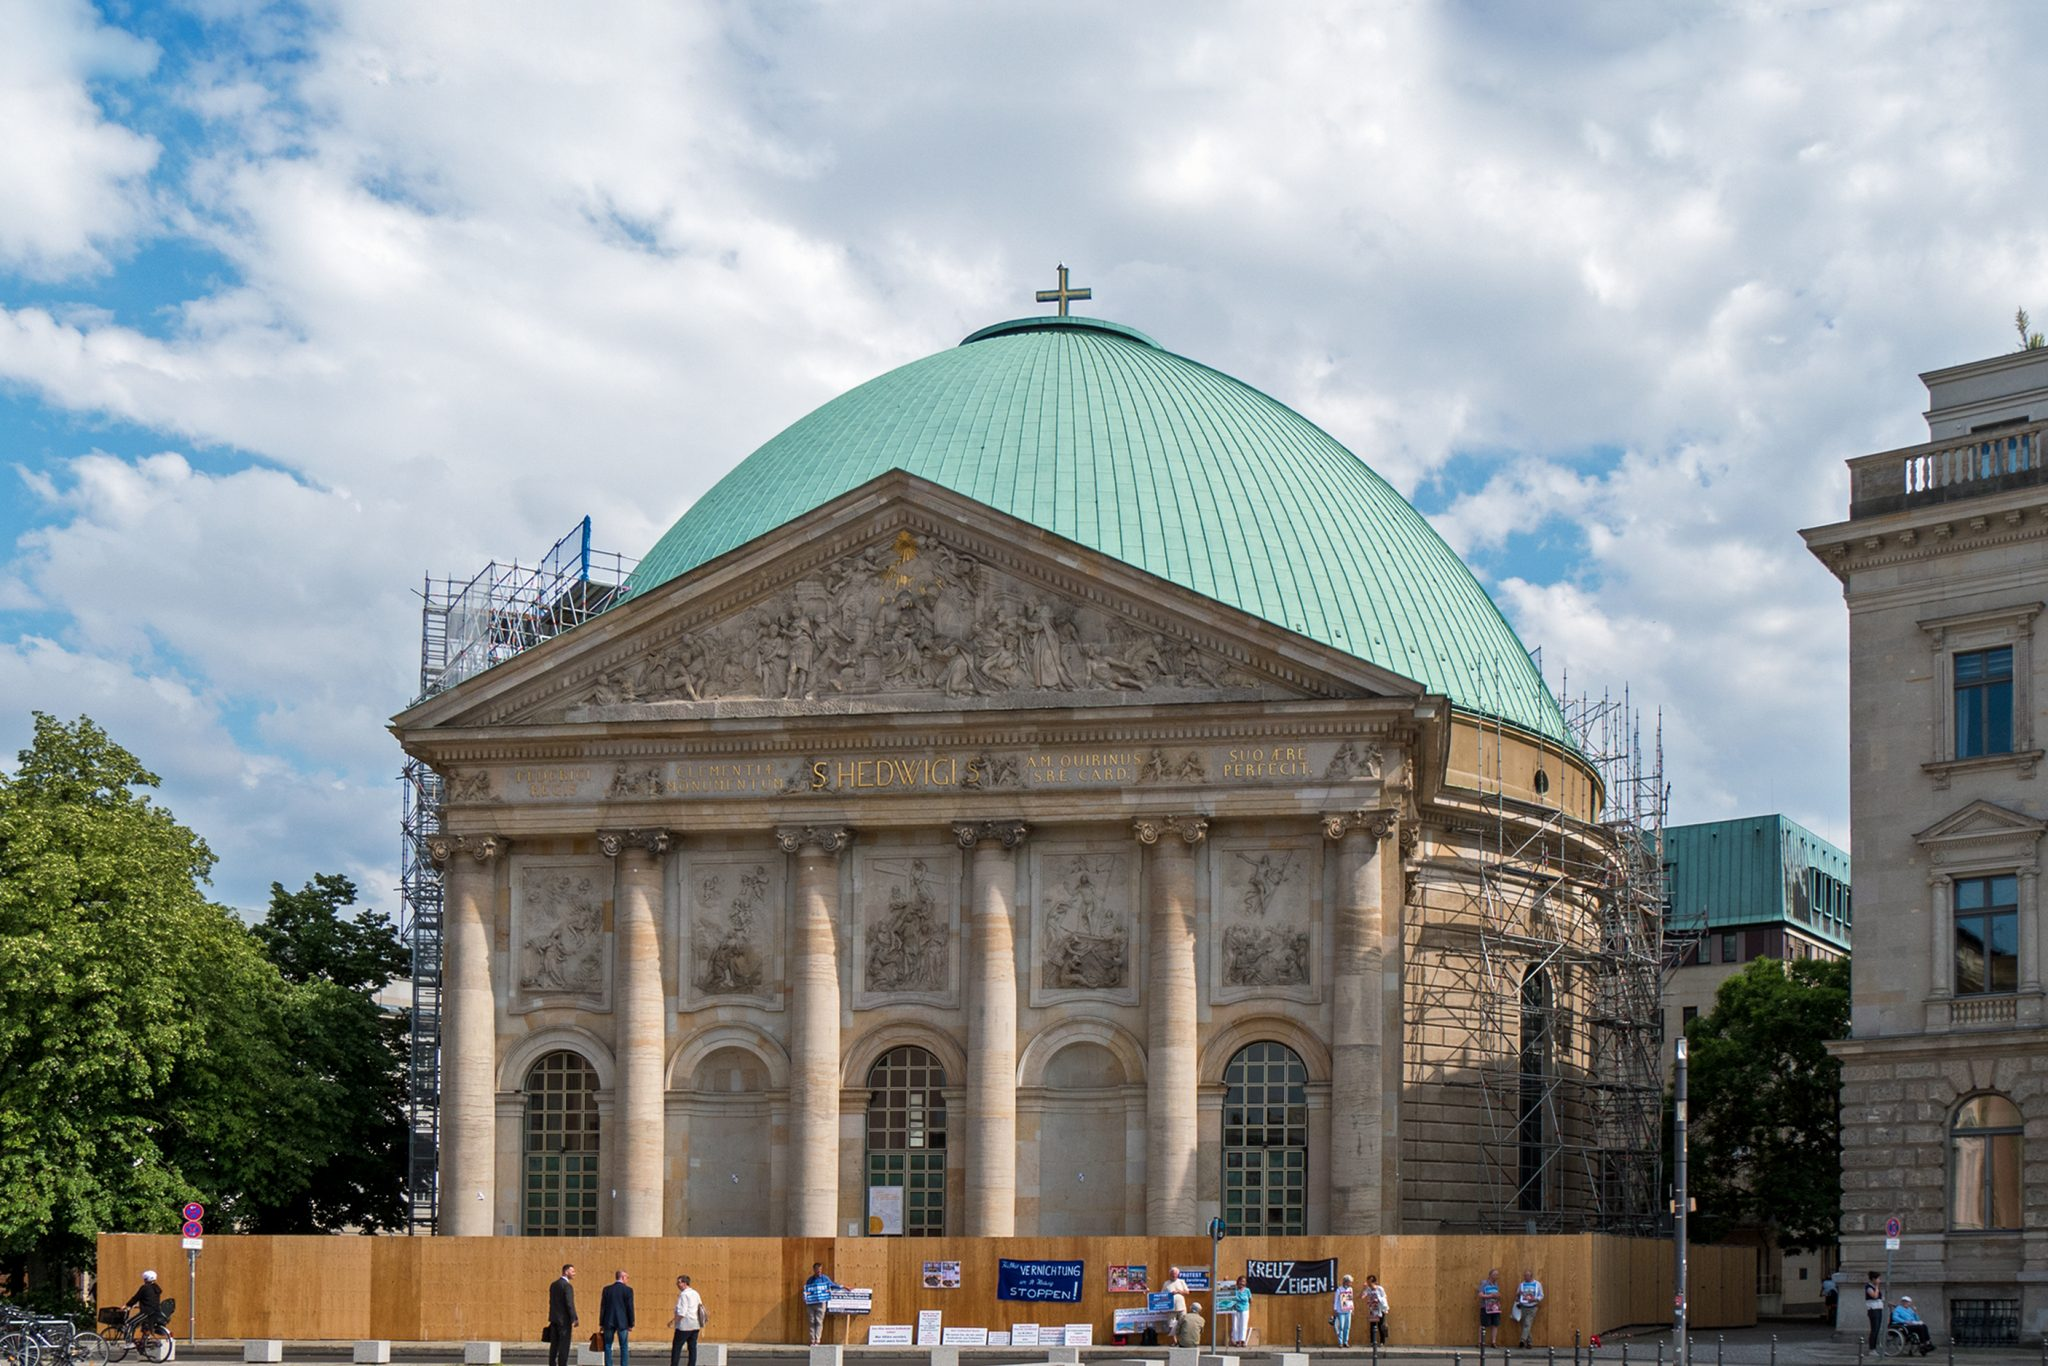 St. Hedwig's Cathedral from 2020